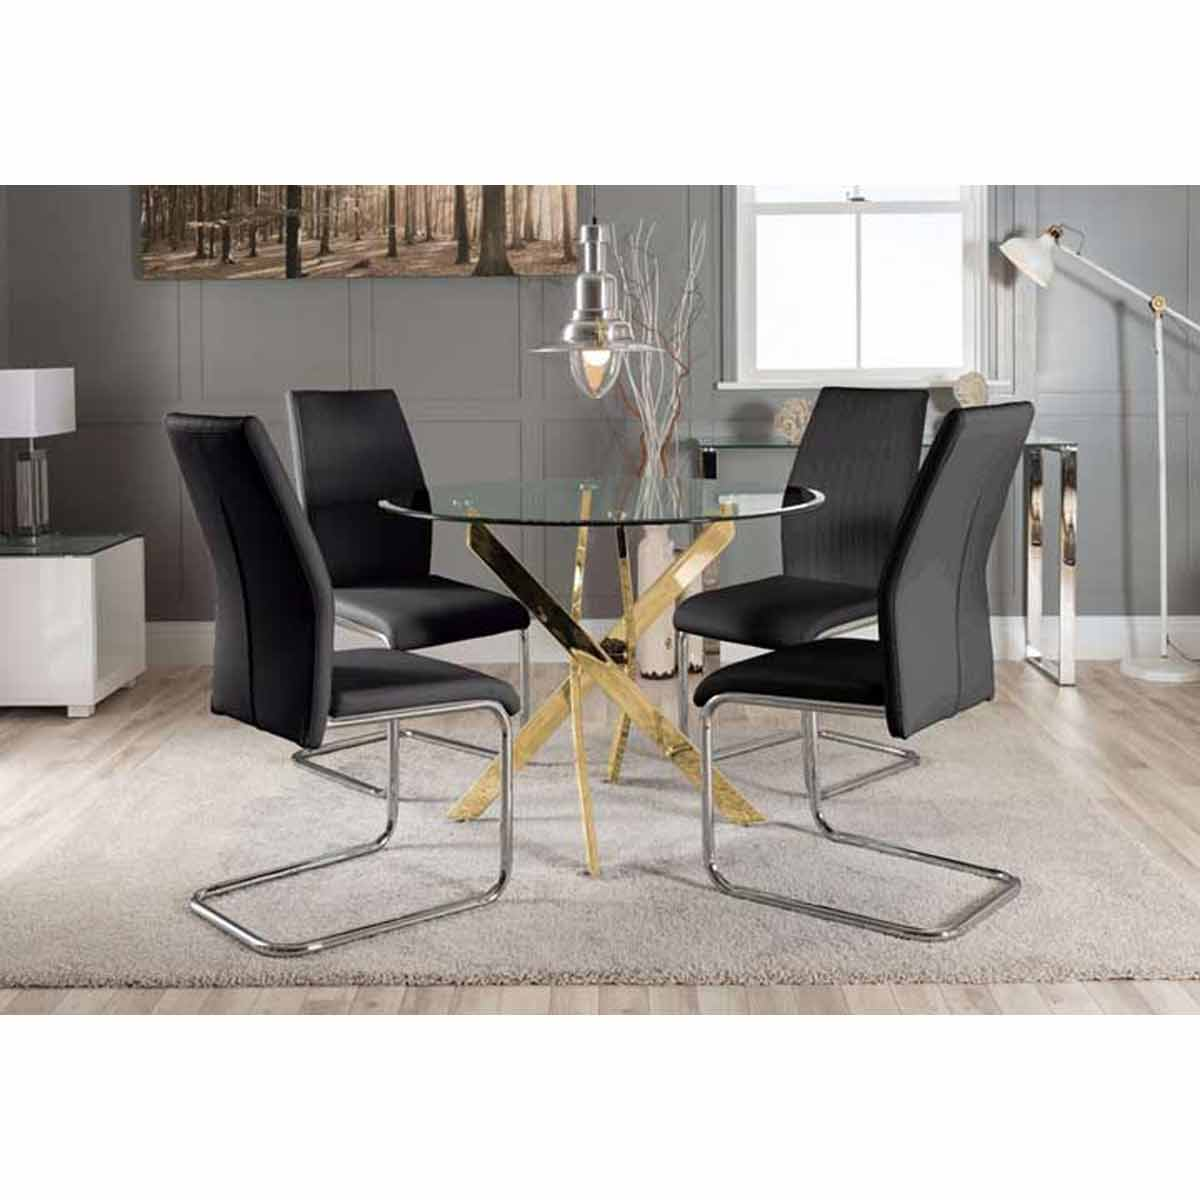 Furniture Box Novara Gold Metal Round Glass Dining Table And 4 Black Lorenzo Dining Chairs